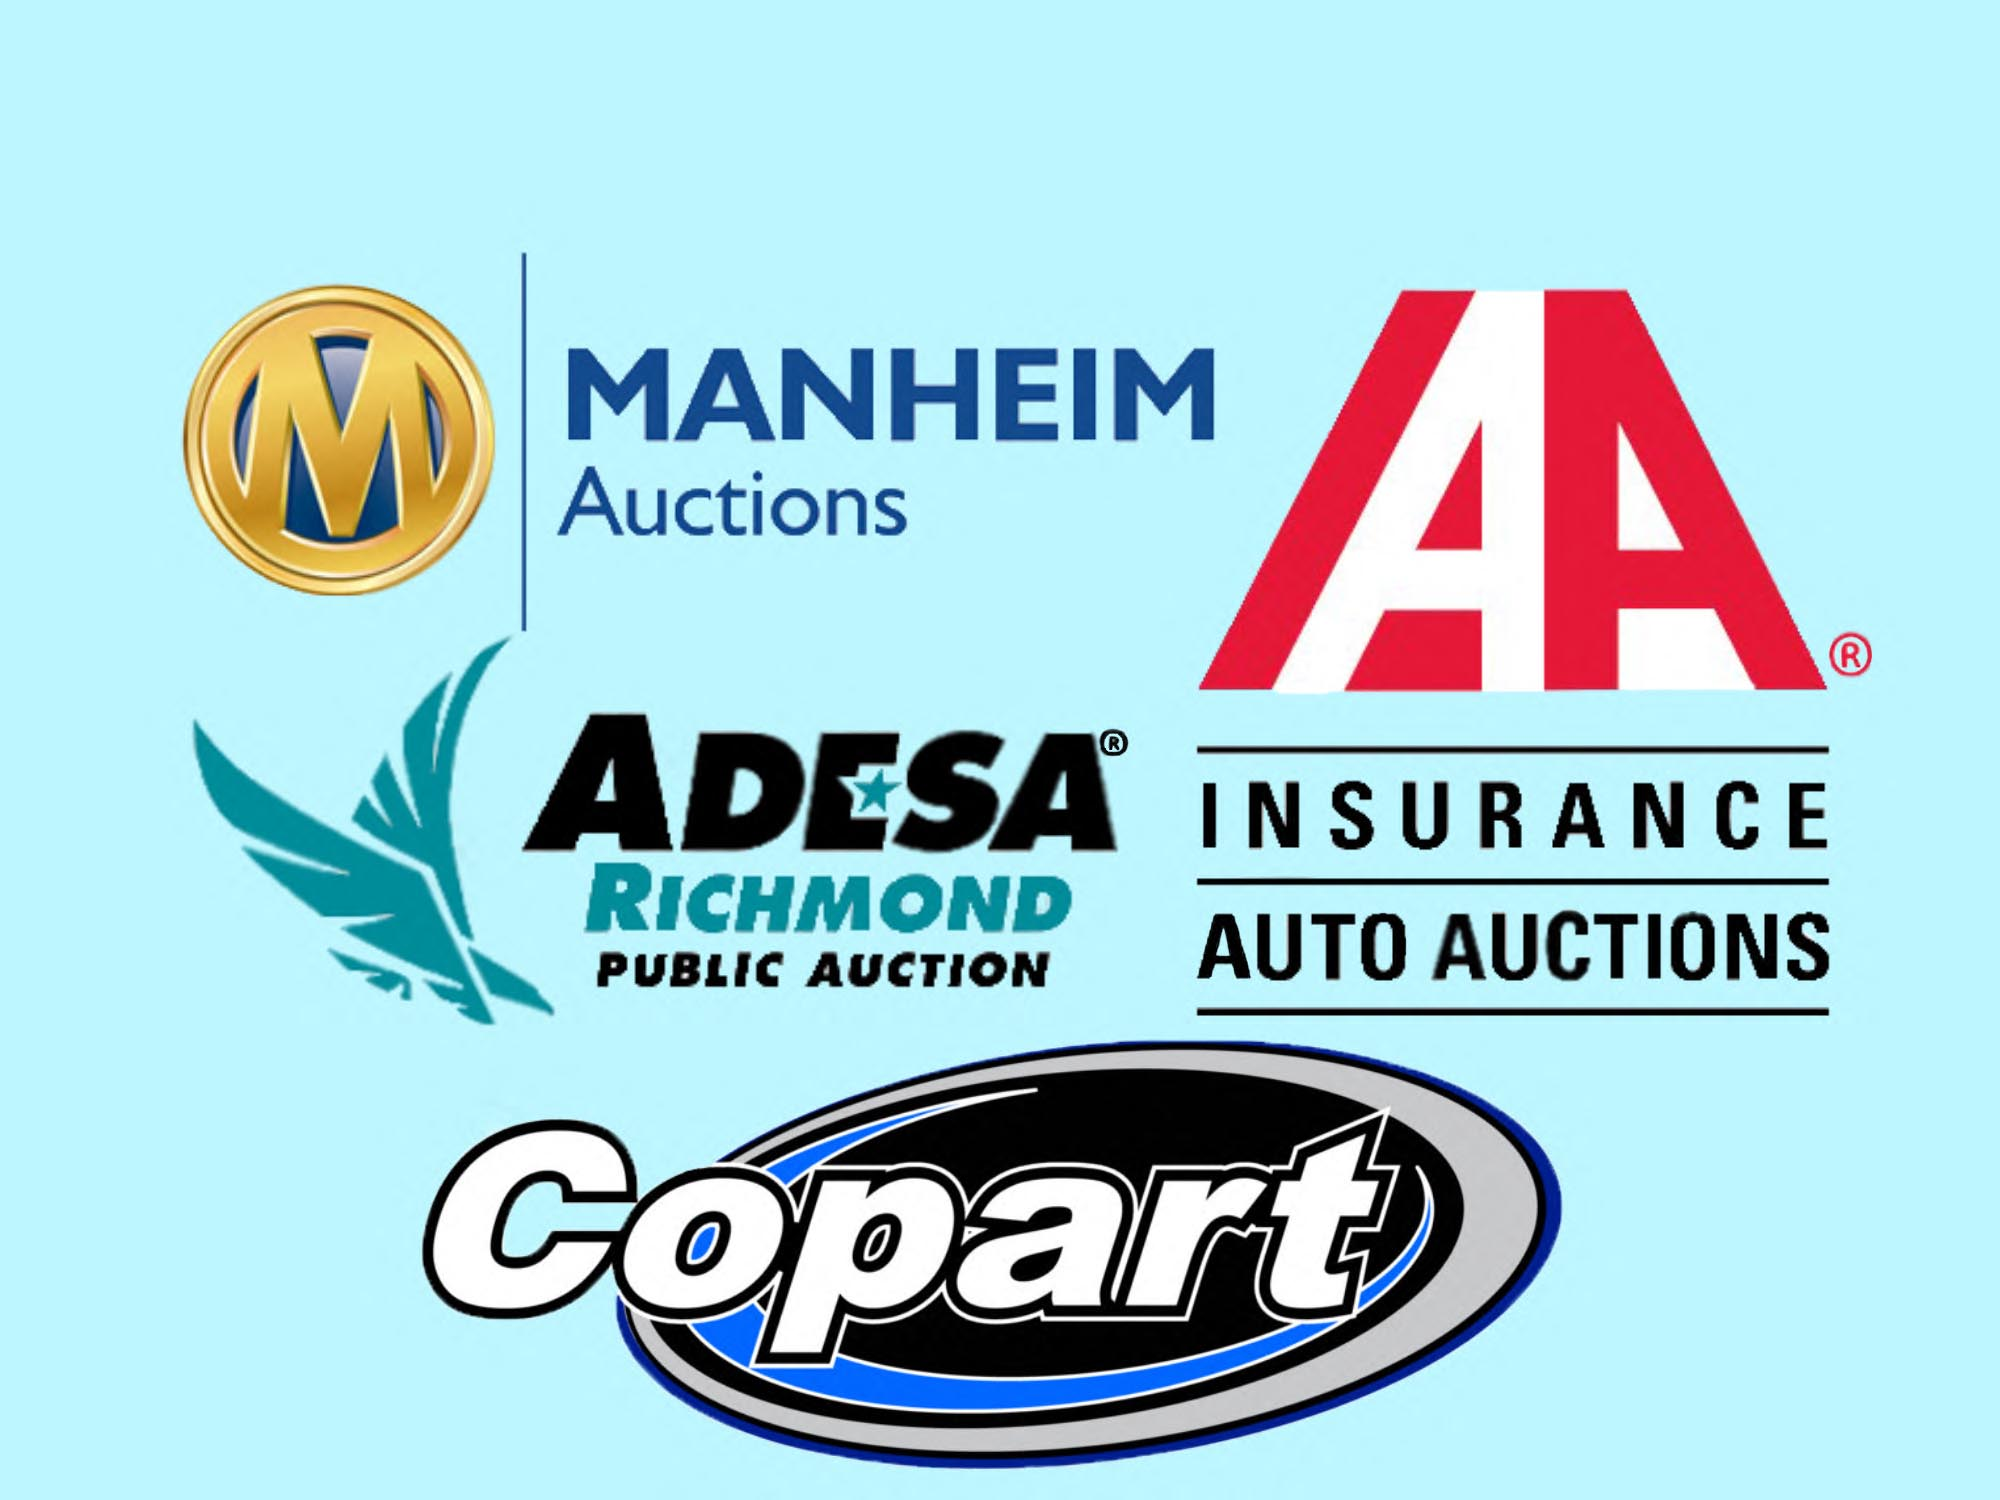 car auctions copart, manheim, IAAI, adesa